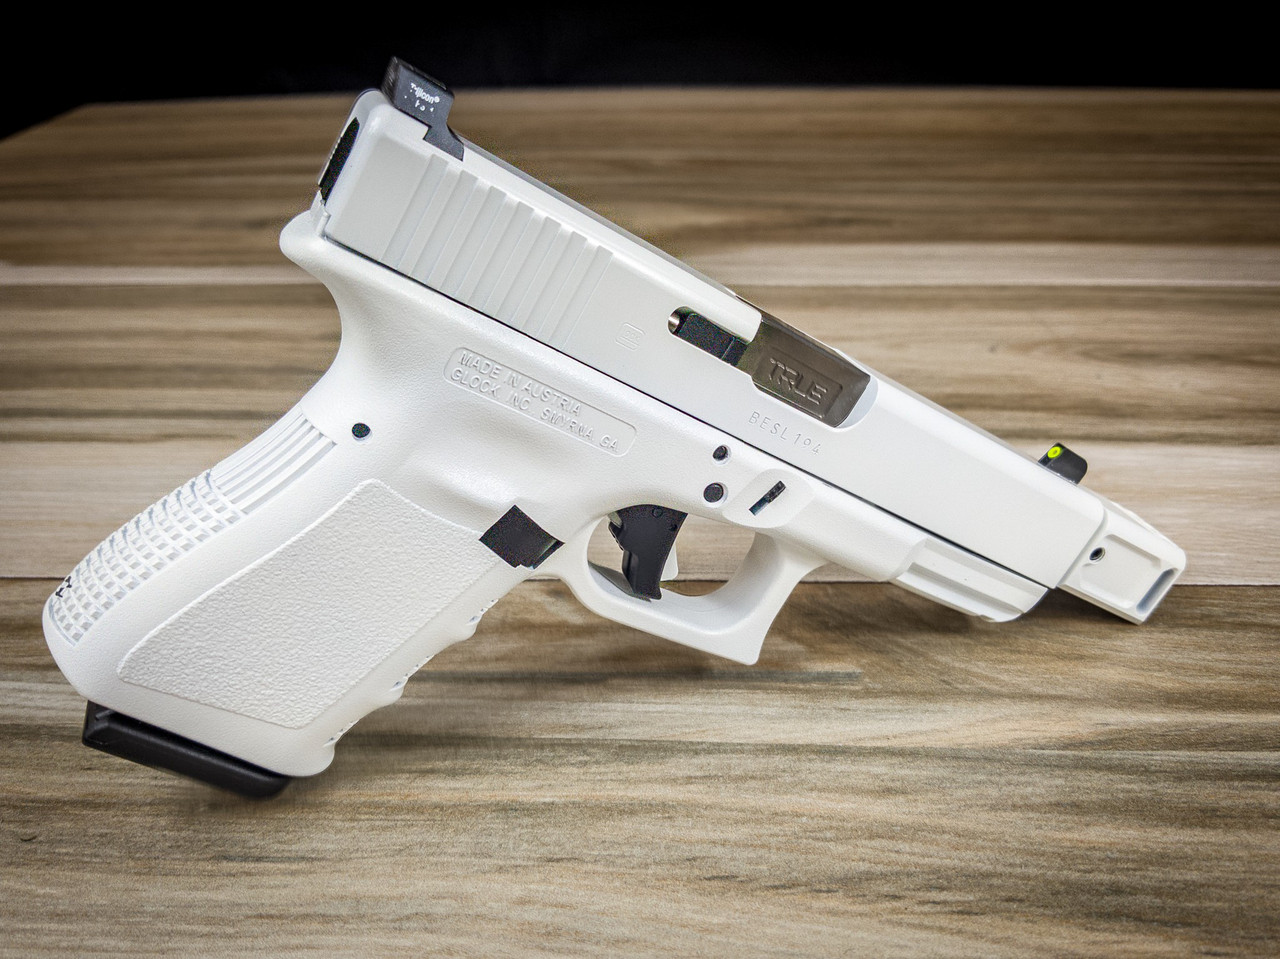 cerakote service stormtrooper white refinishing on your pistol